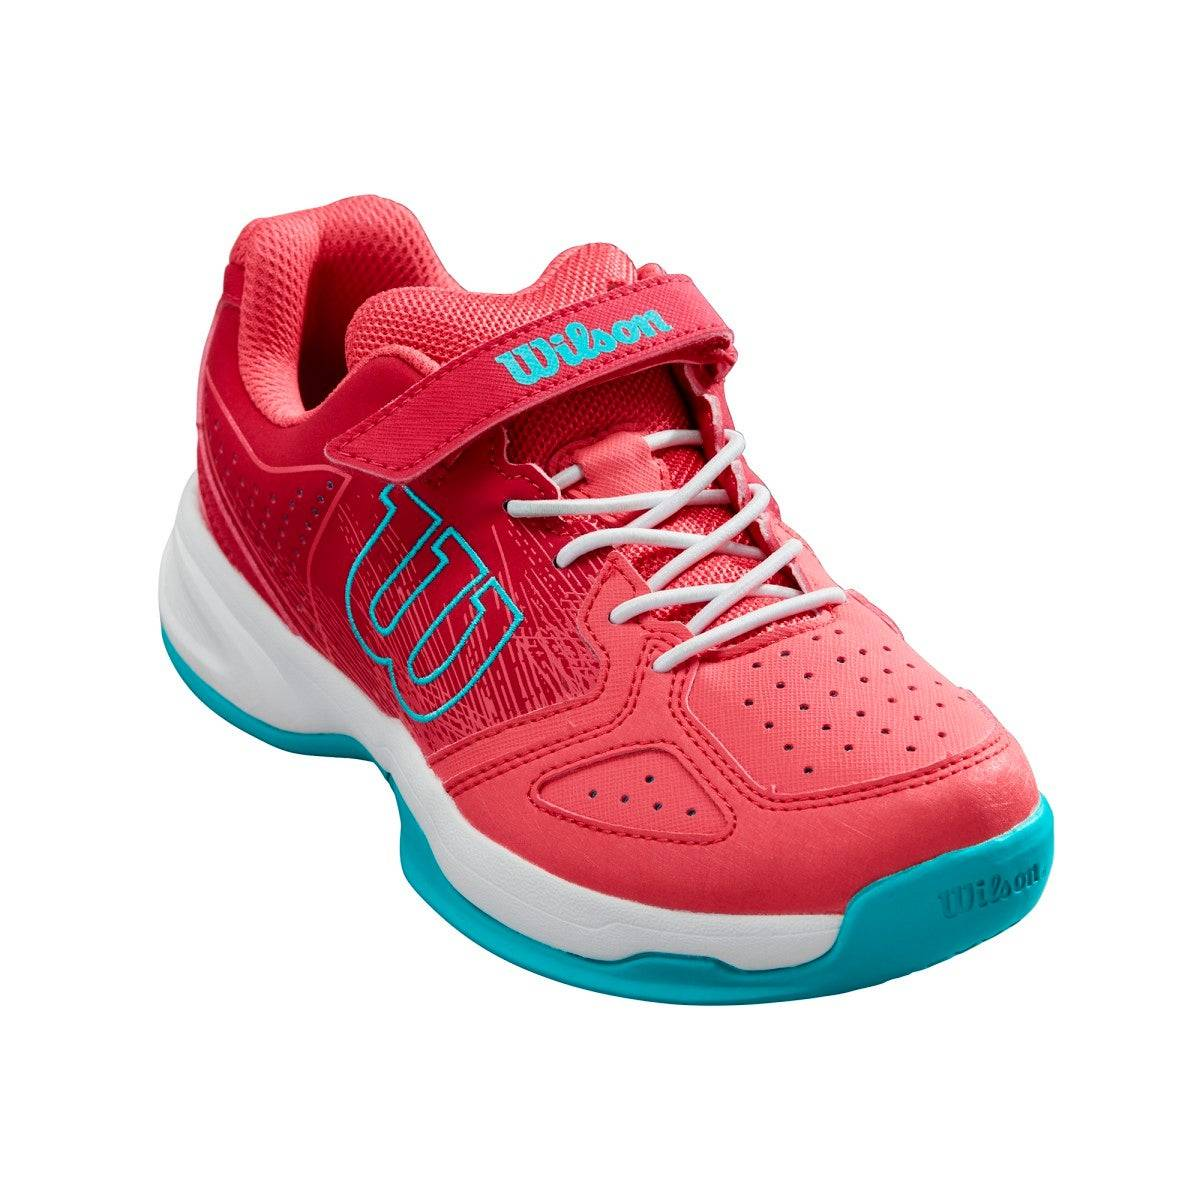 Wilson Junior Kaos K Tennis Shoes in Paradise Pink / White / Peacock Blue - Size: 13 Y  - Unisex - Paradise Pink/White/Peacock Blue - Size: 13 Y